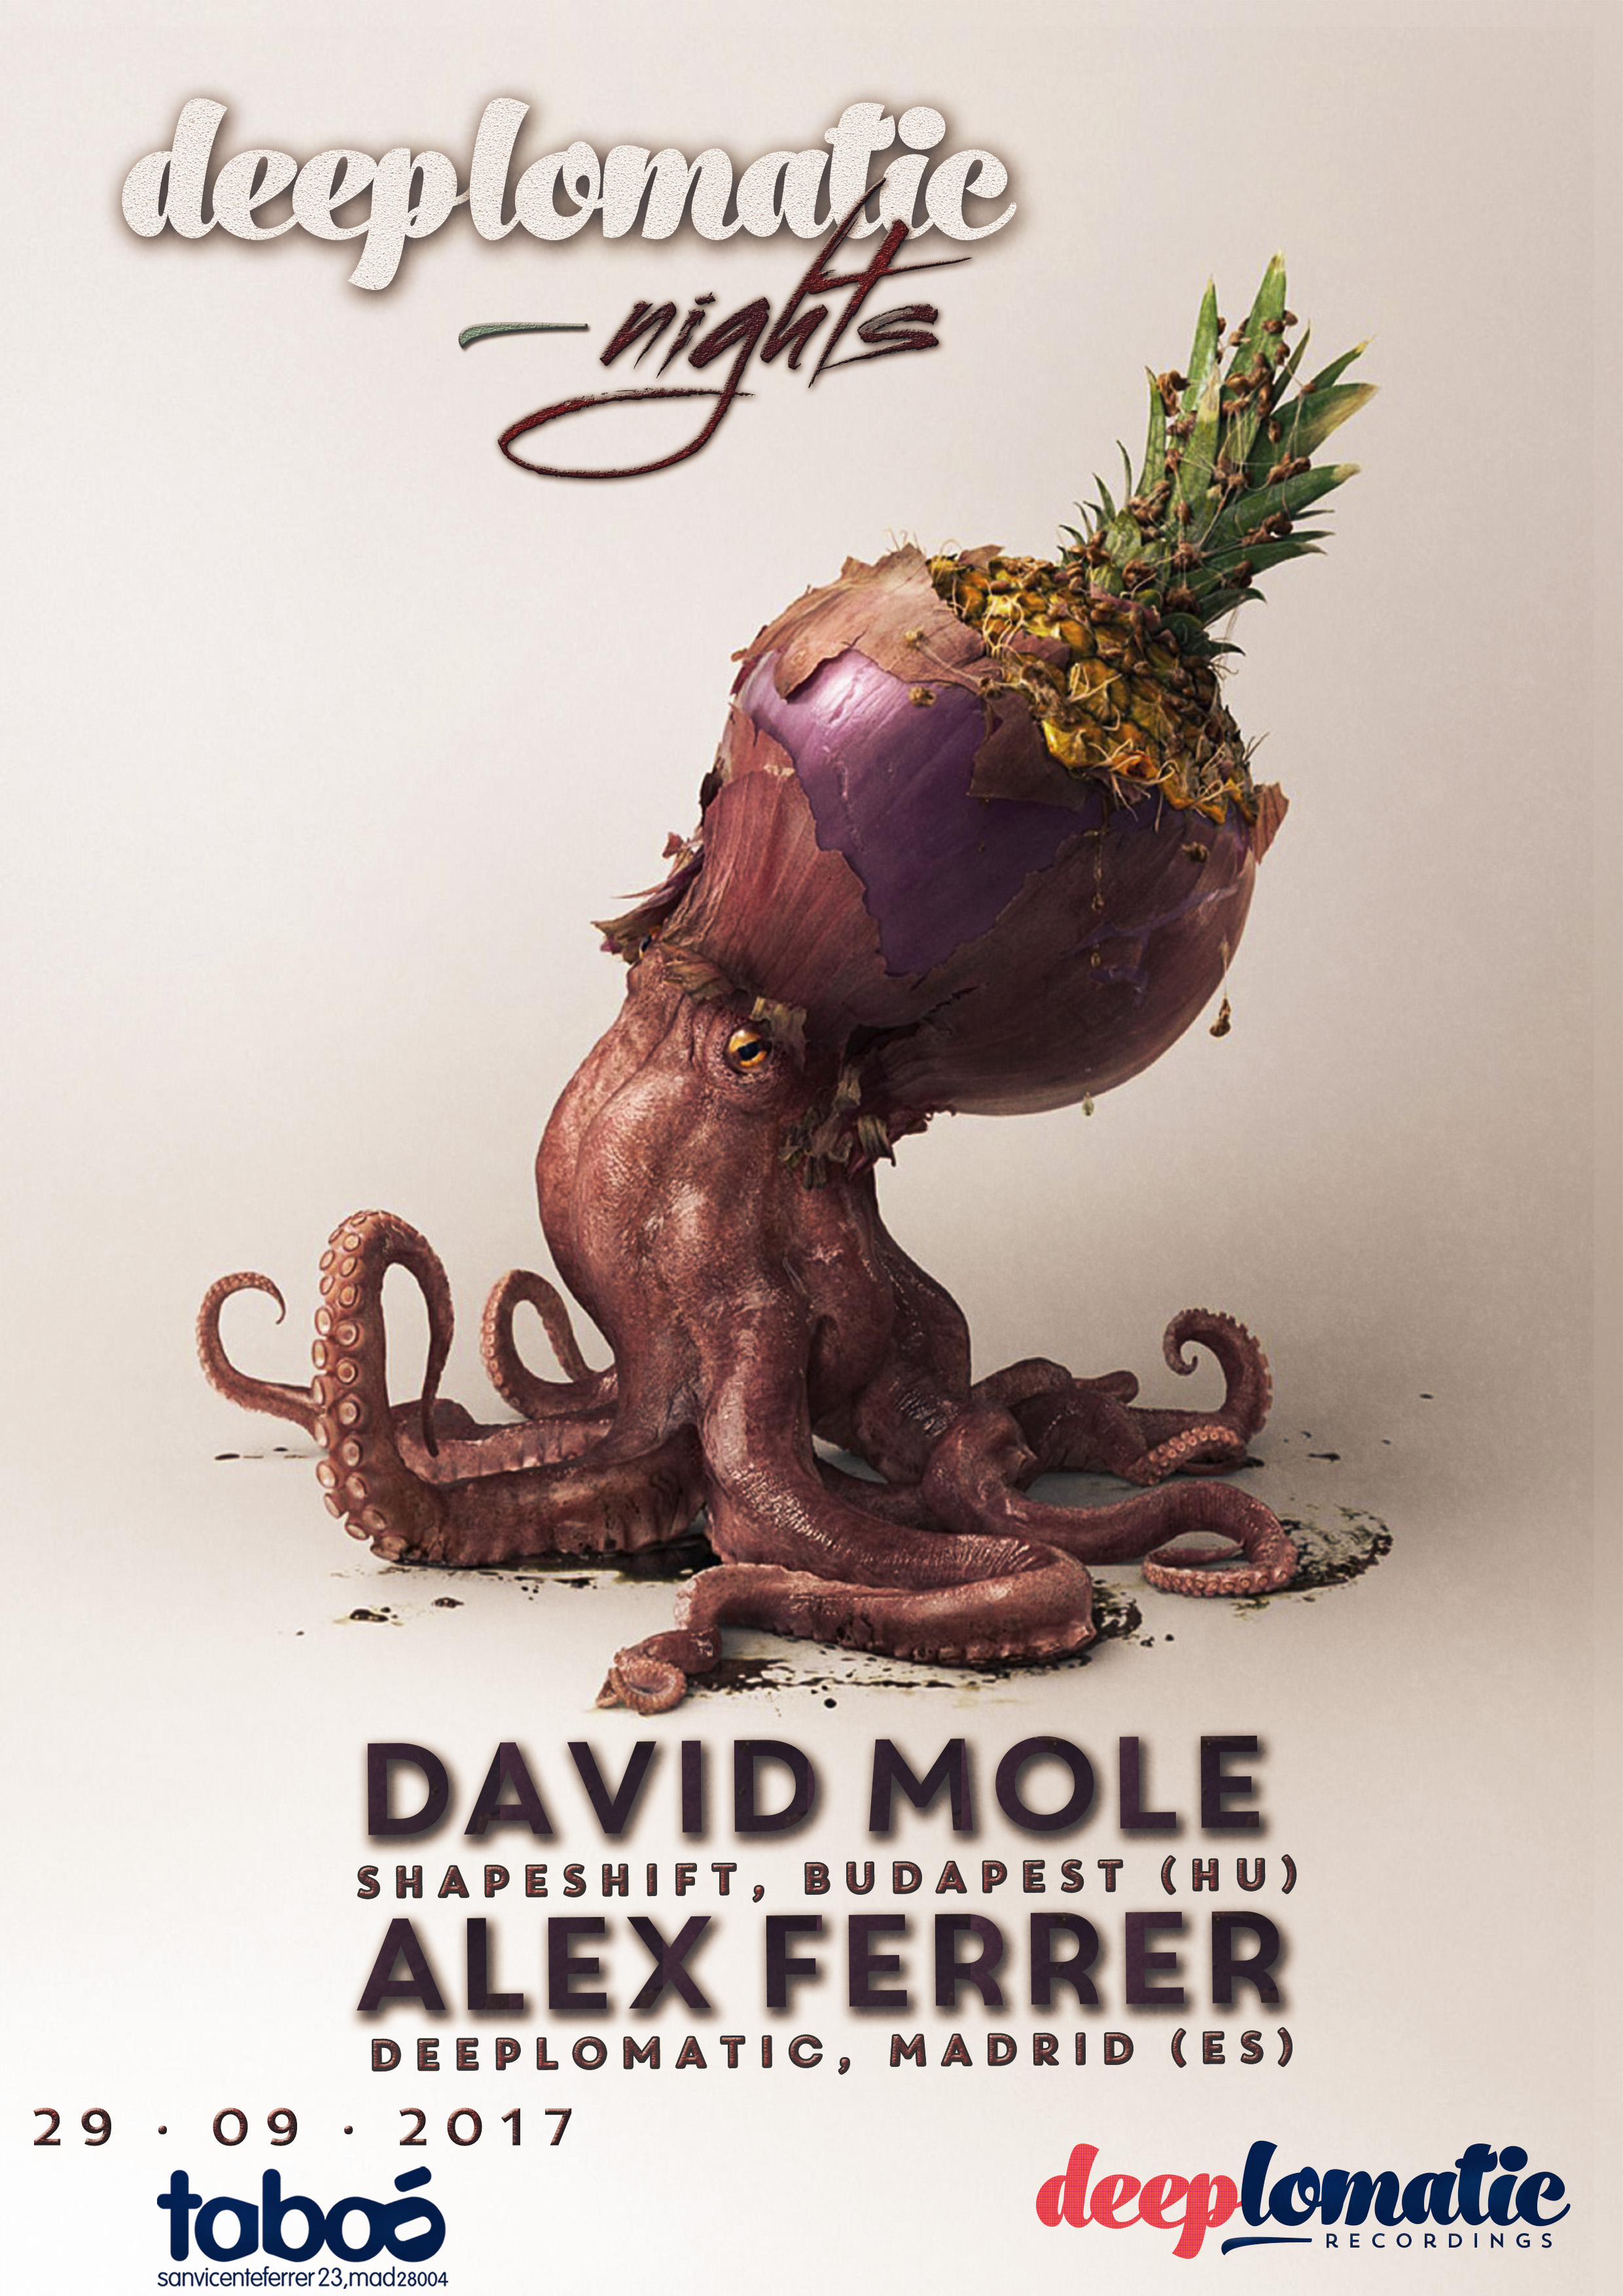 Deeplomatic Nights with David Mole & Alex Ferrer at Taboo